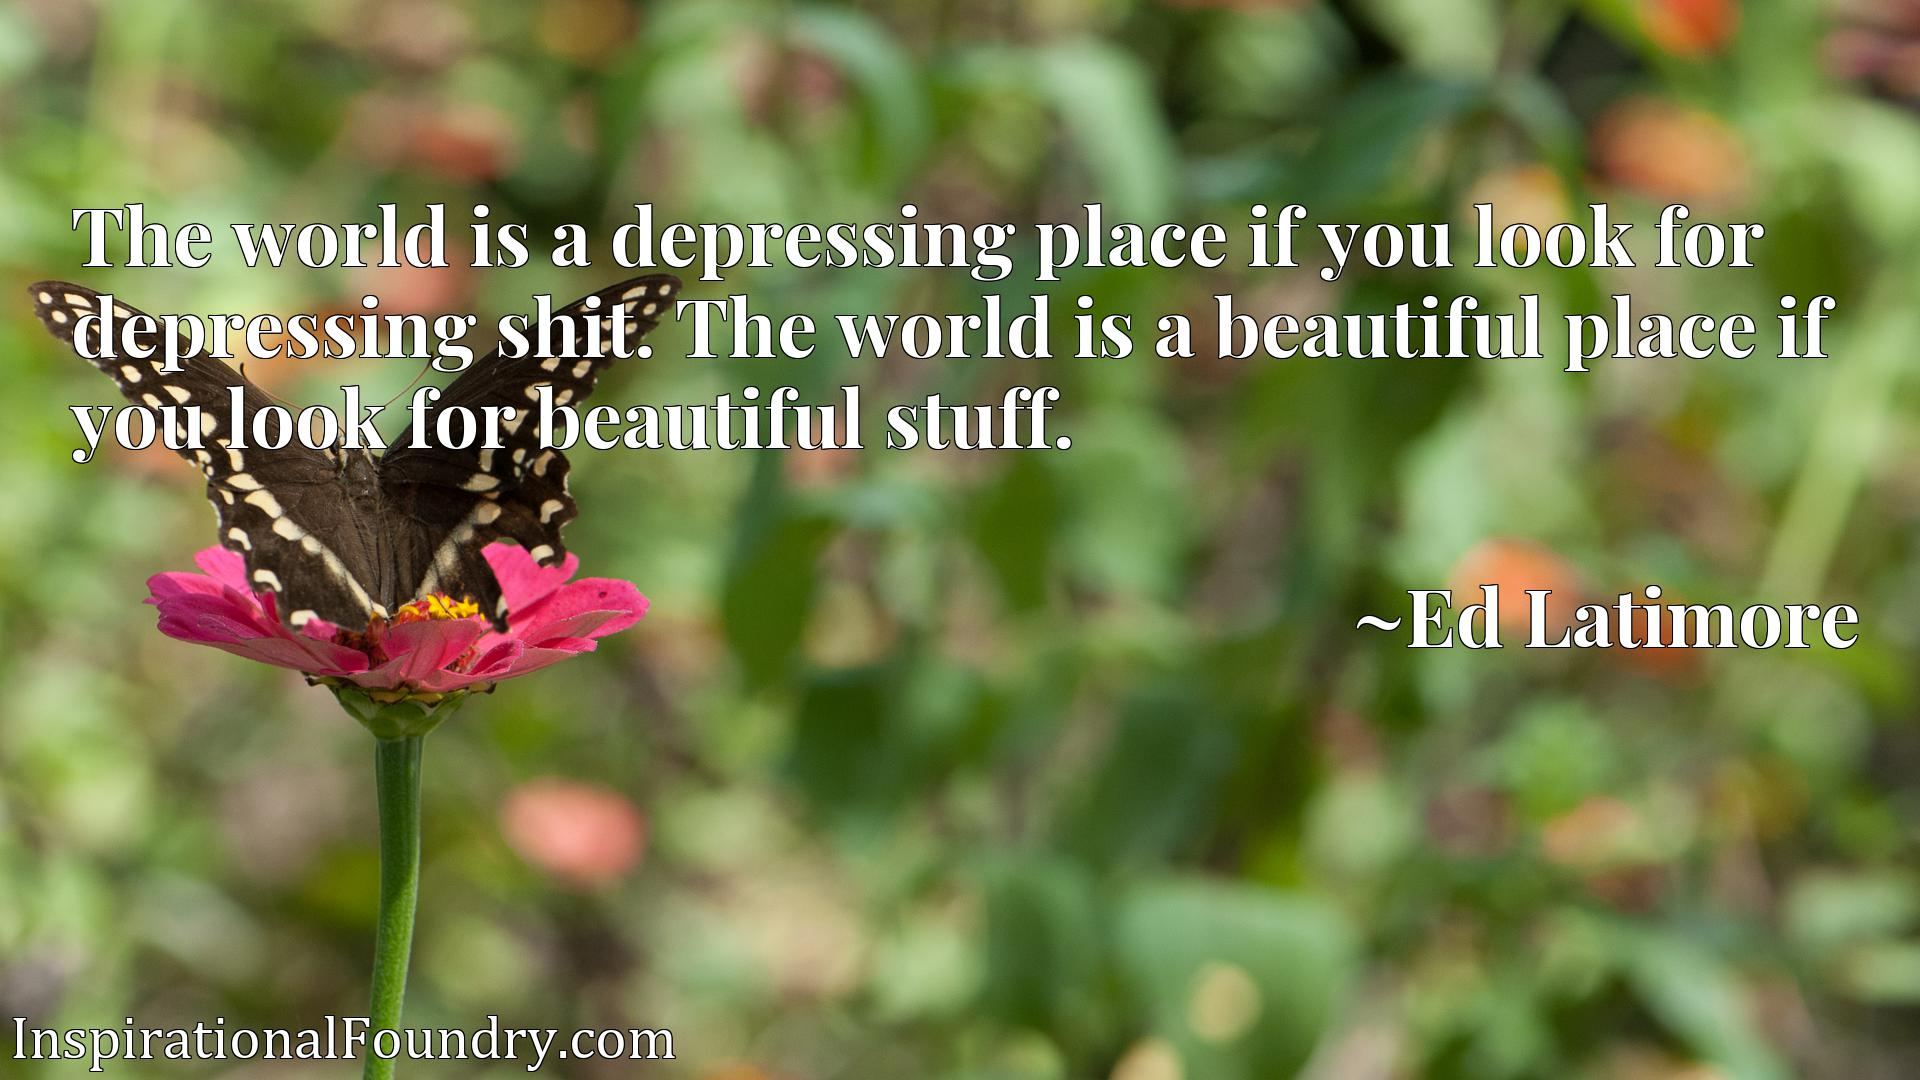 The world is a depressing place if you look for depressing shit. The world is a beautiful place if you look for beautiful stuff.